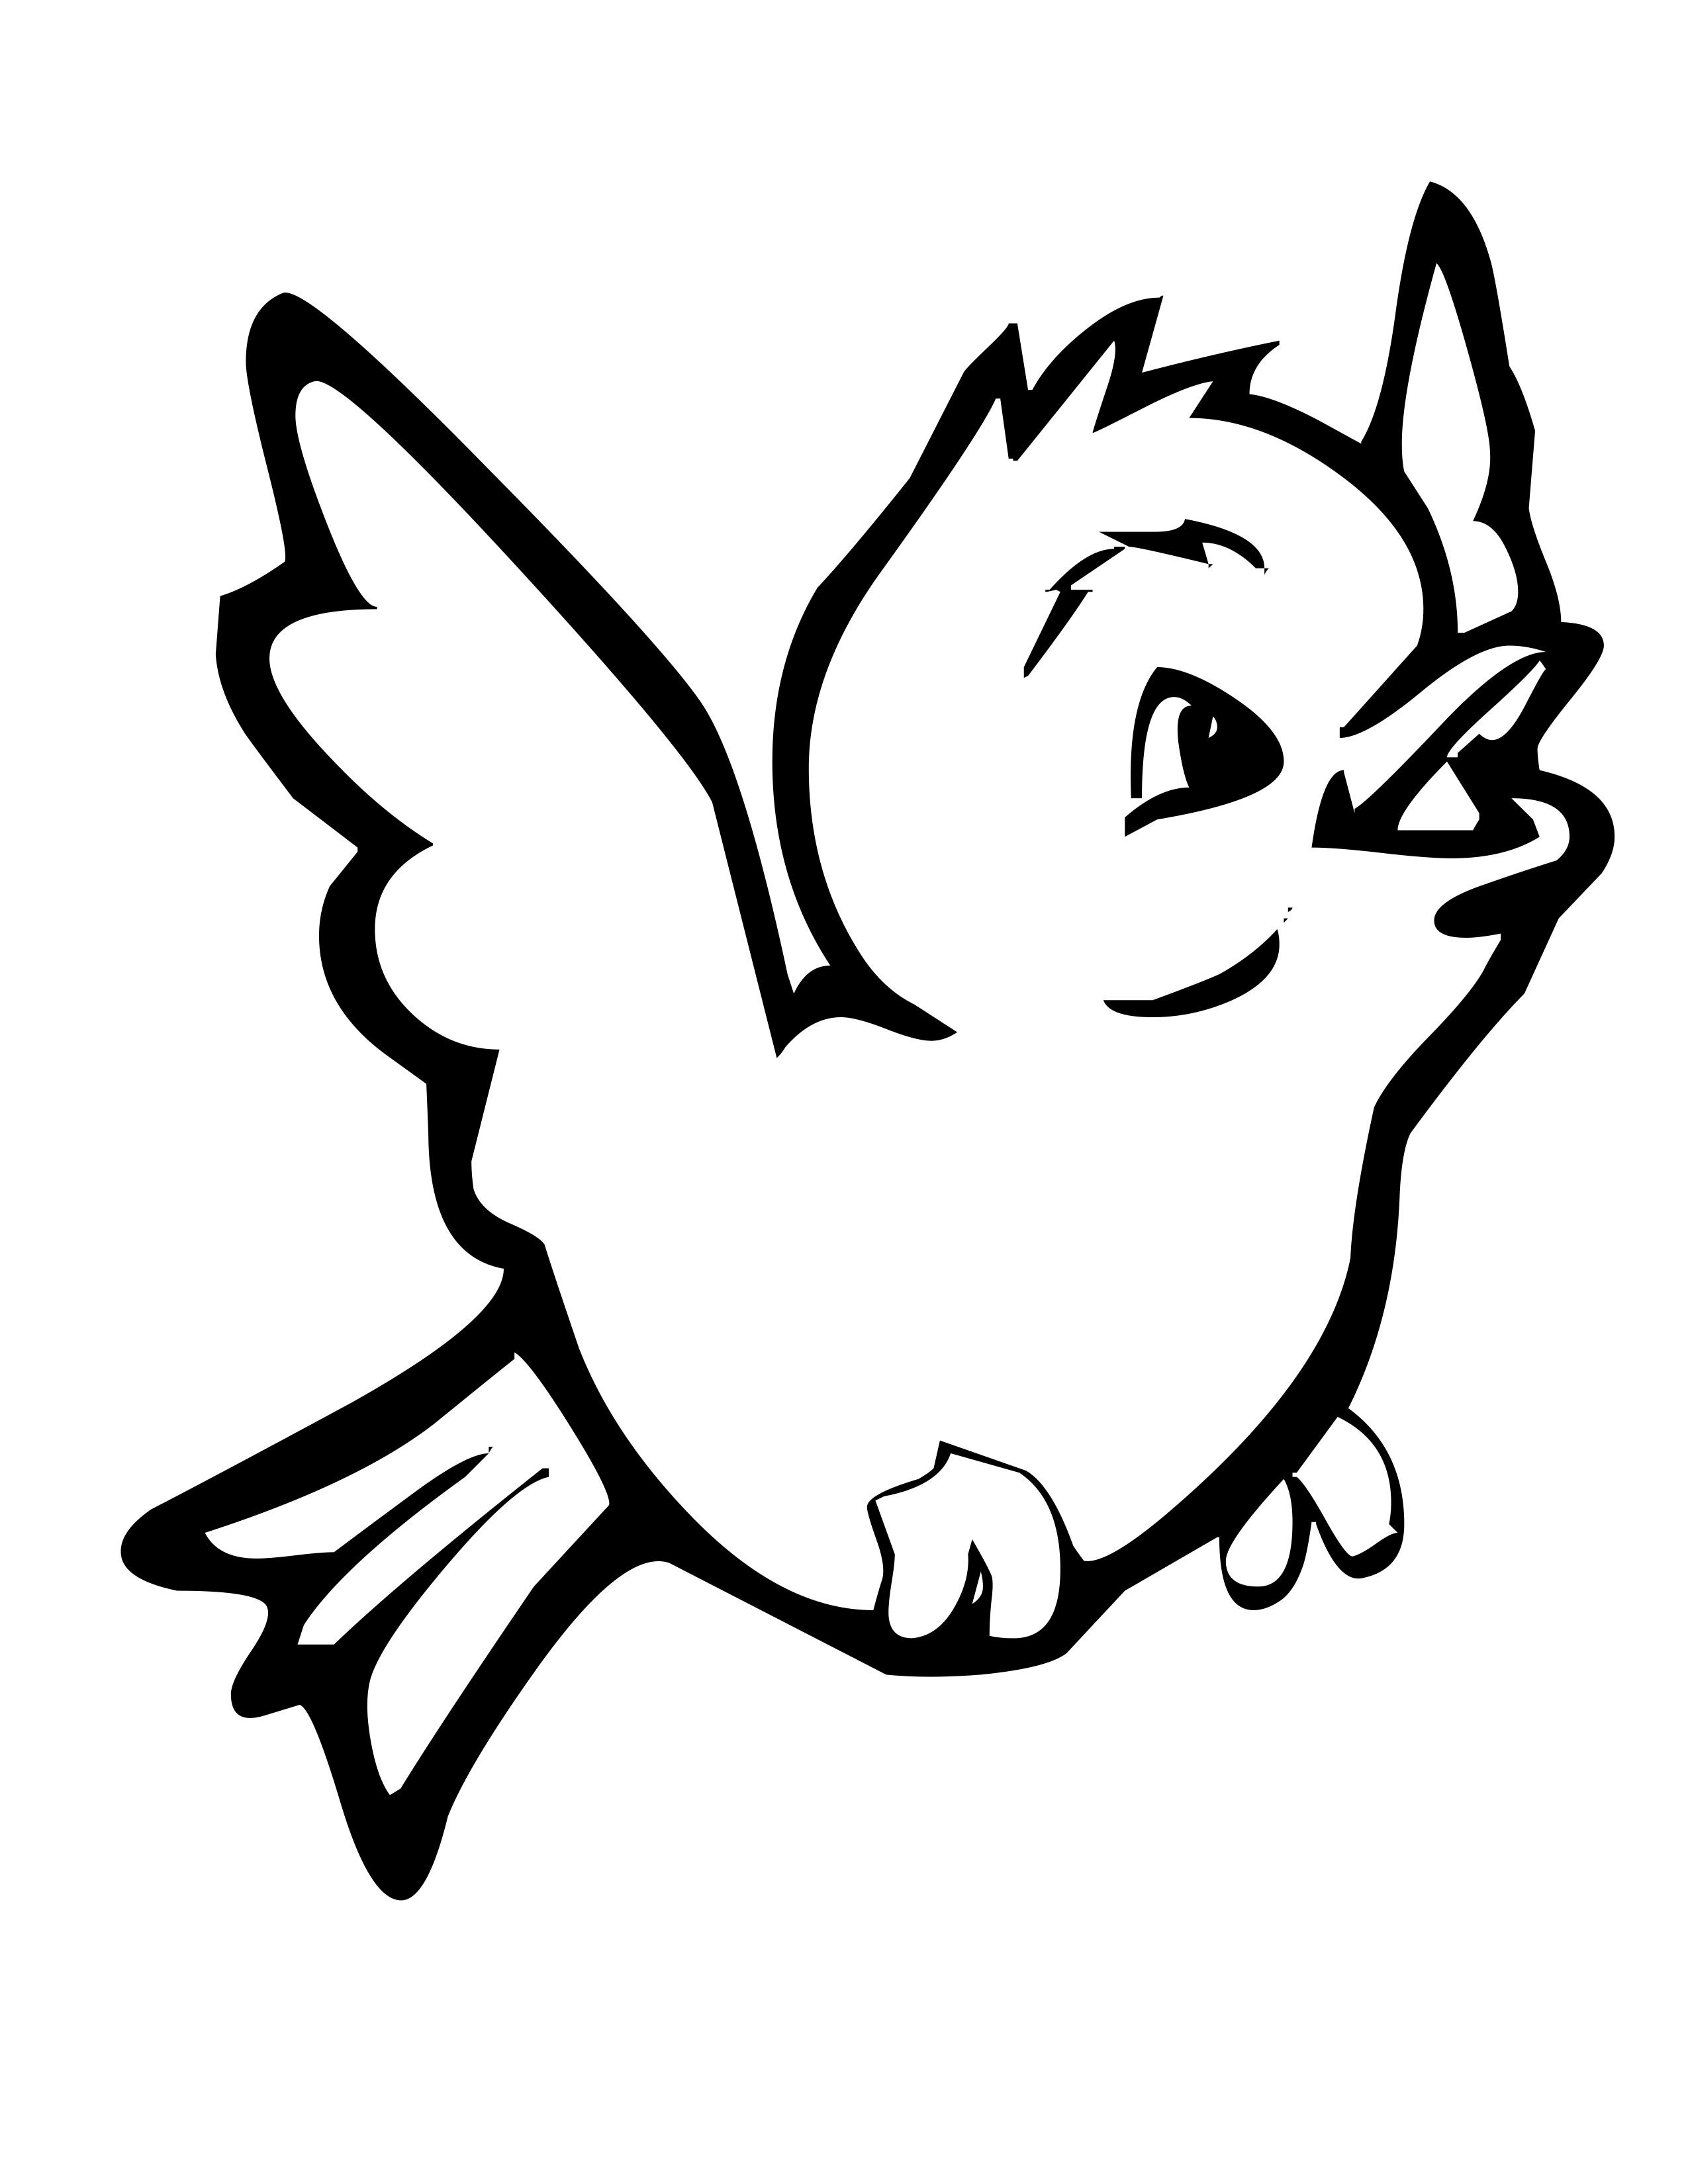 coloring pages for kids birds free printable hummingbird coloring pages for kids kids pages birds coloring for